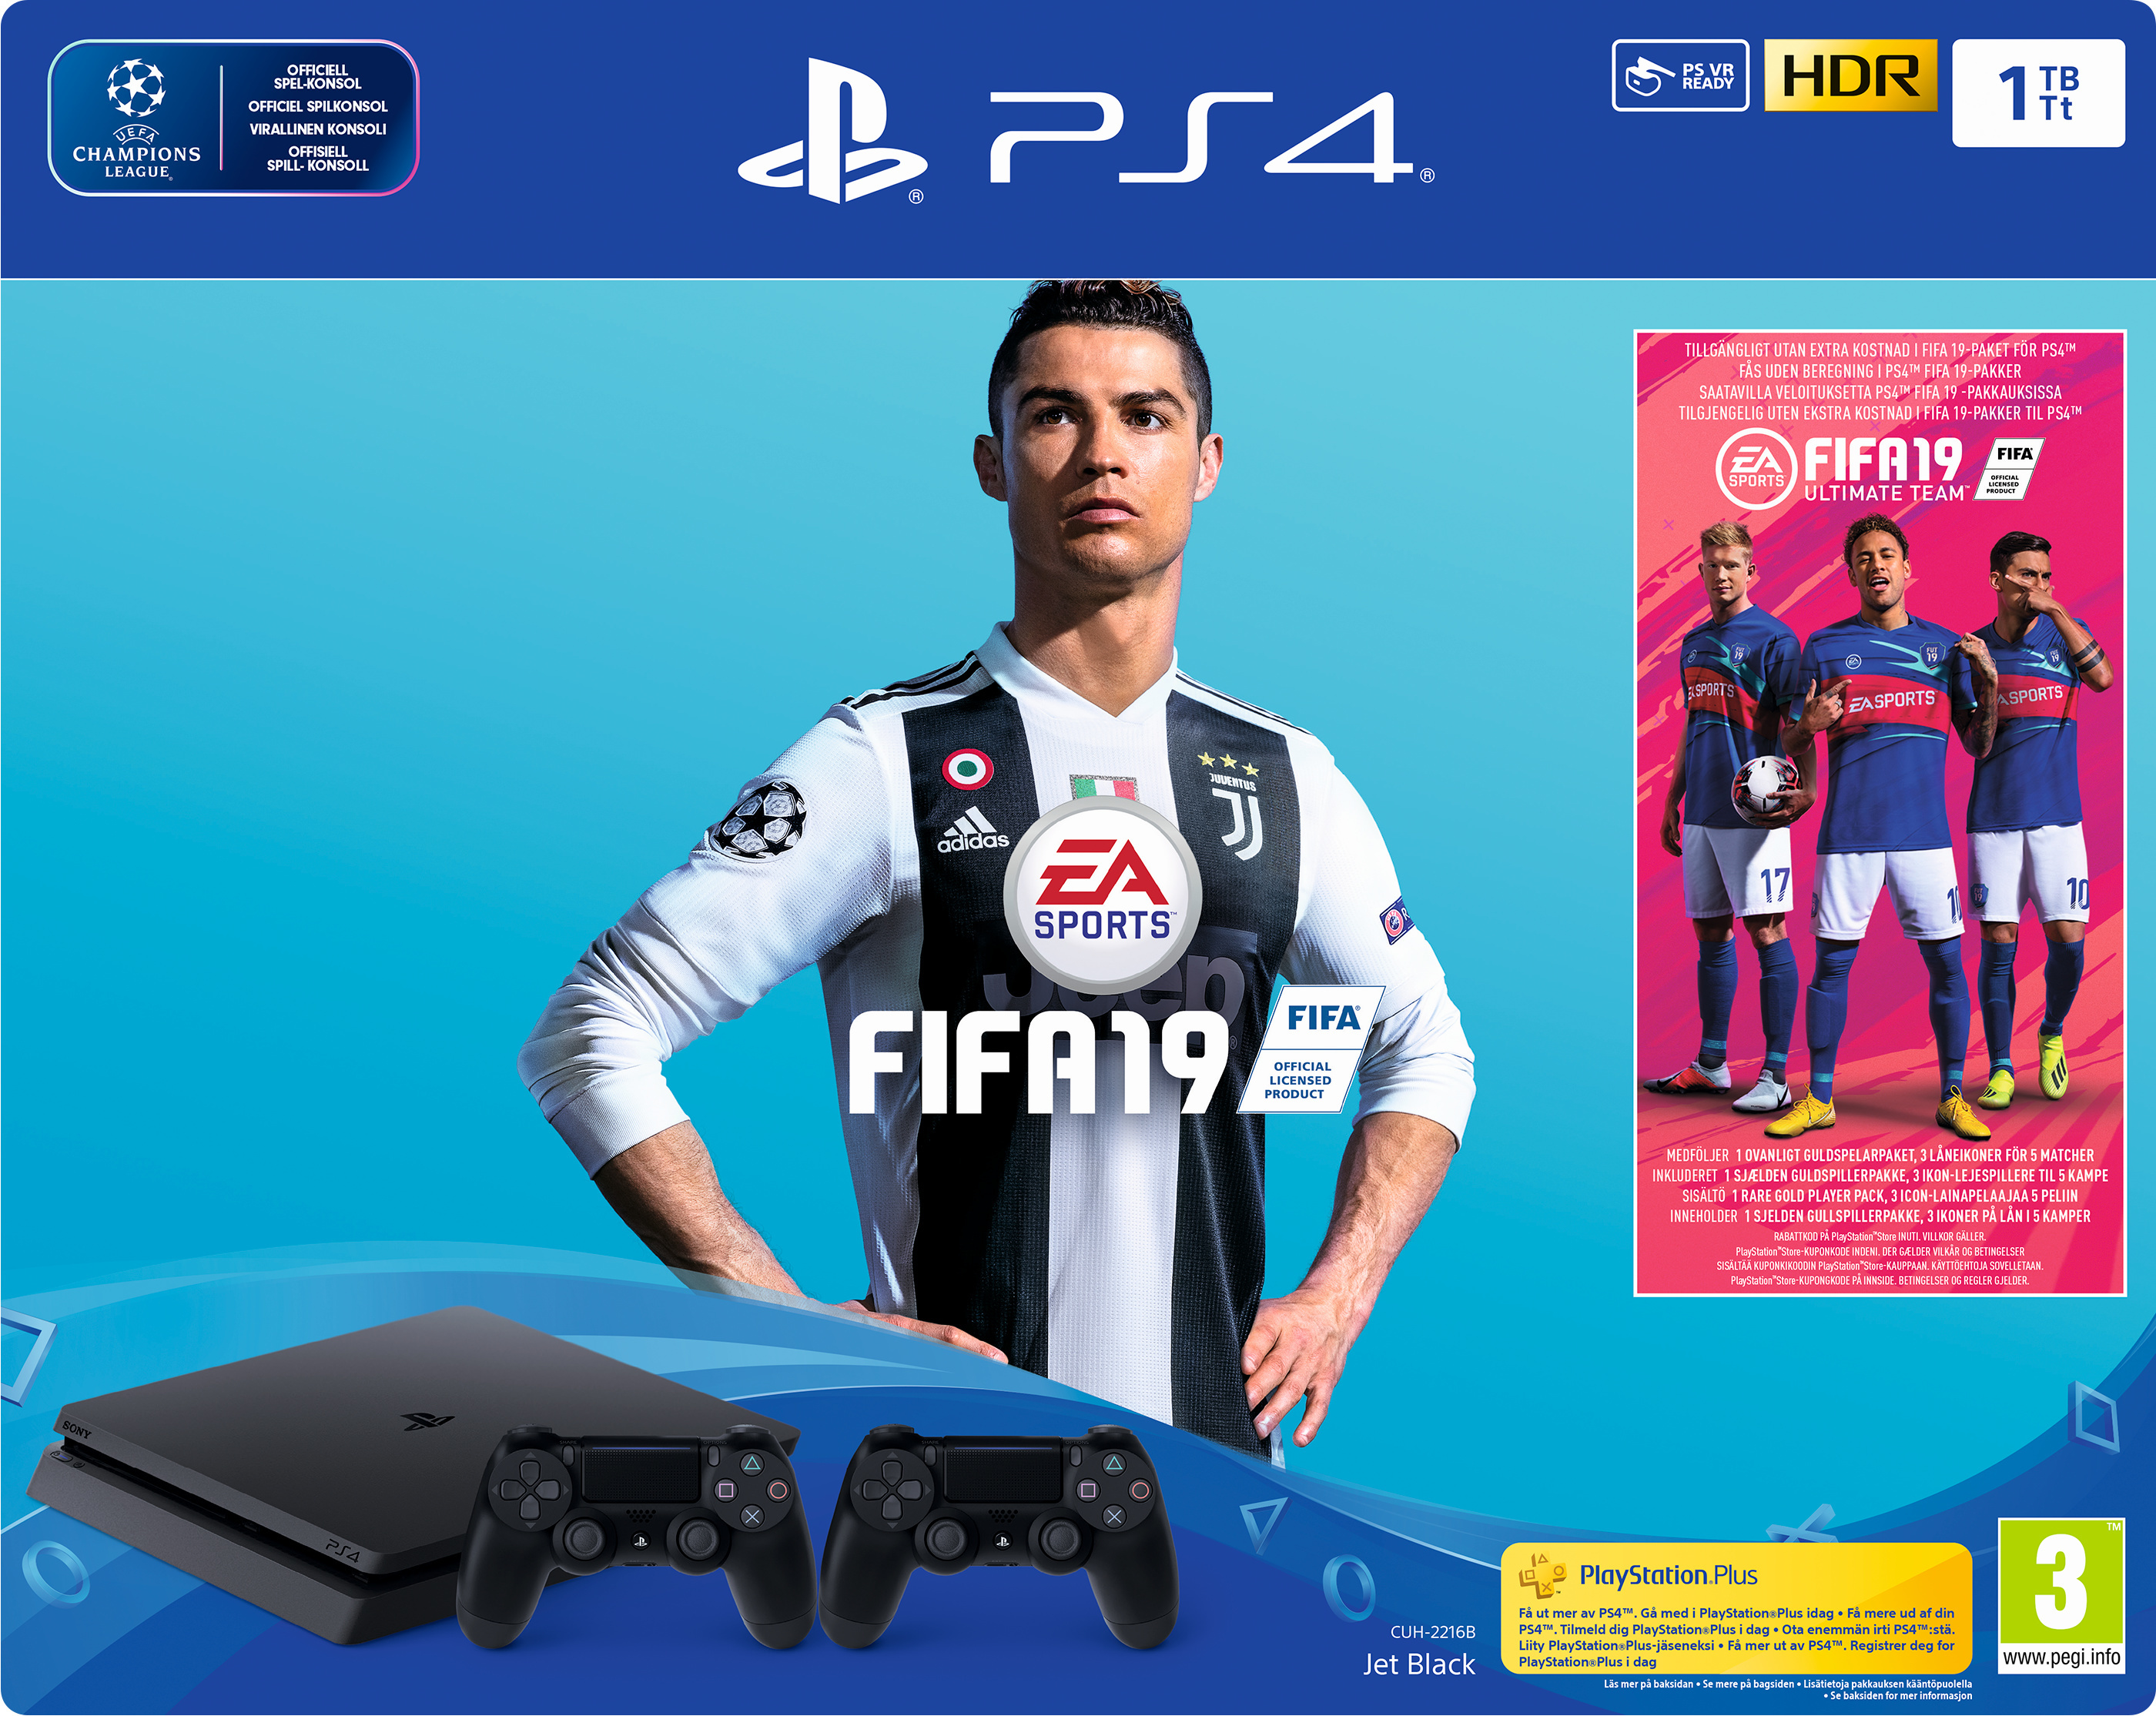 PlayStation 4 Slim (1TB, Jet Black) + 2 Controller + FIFA 19